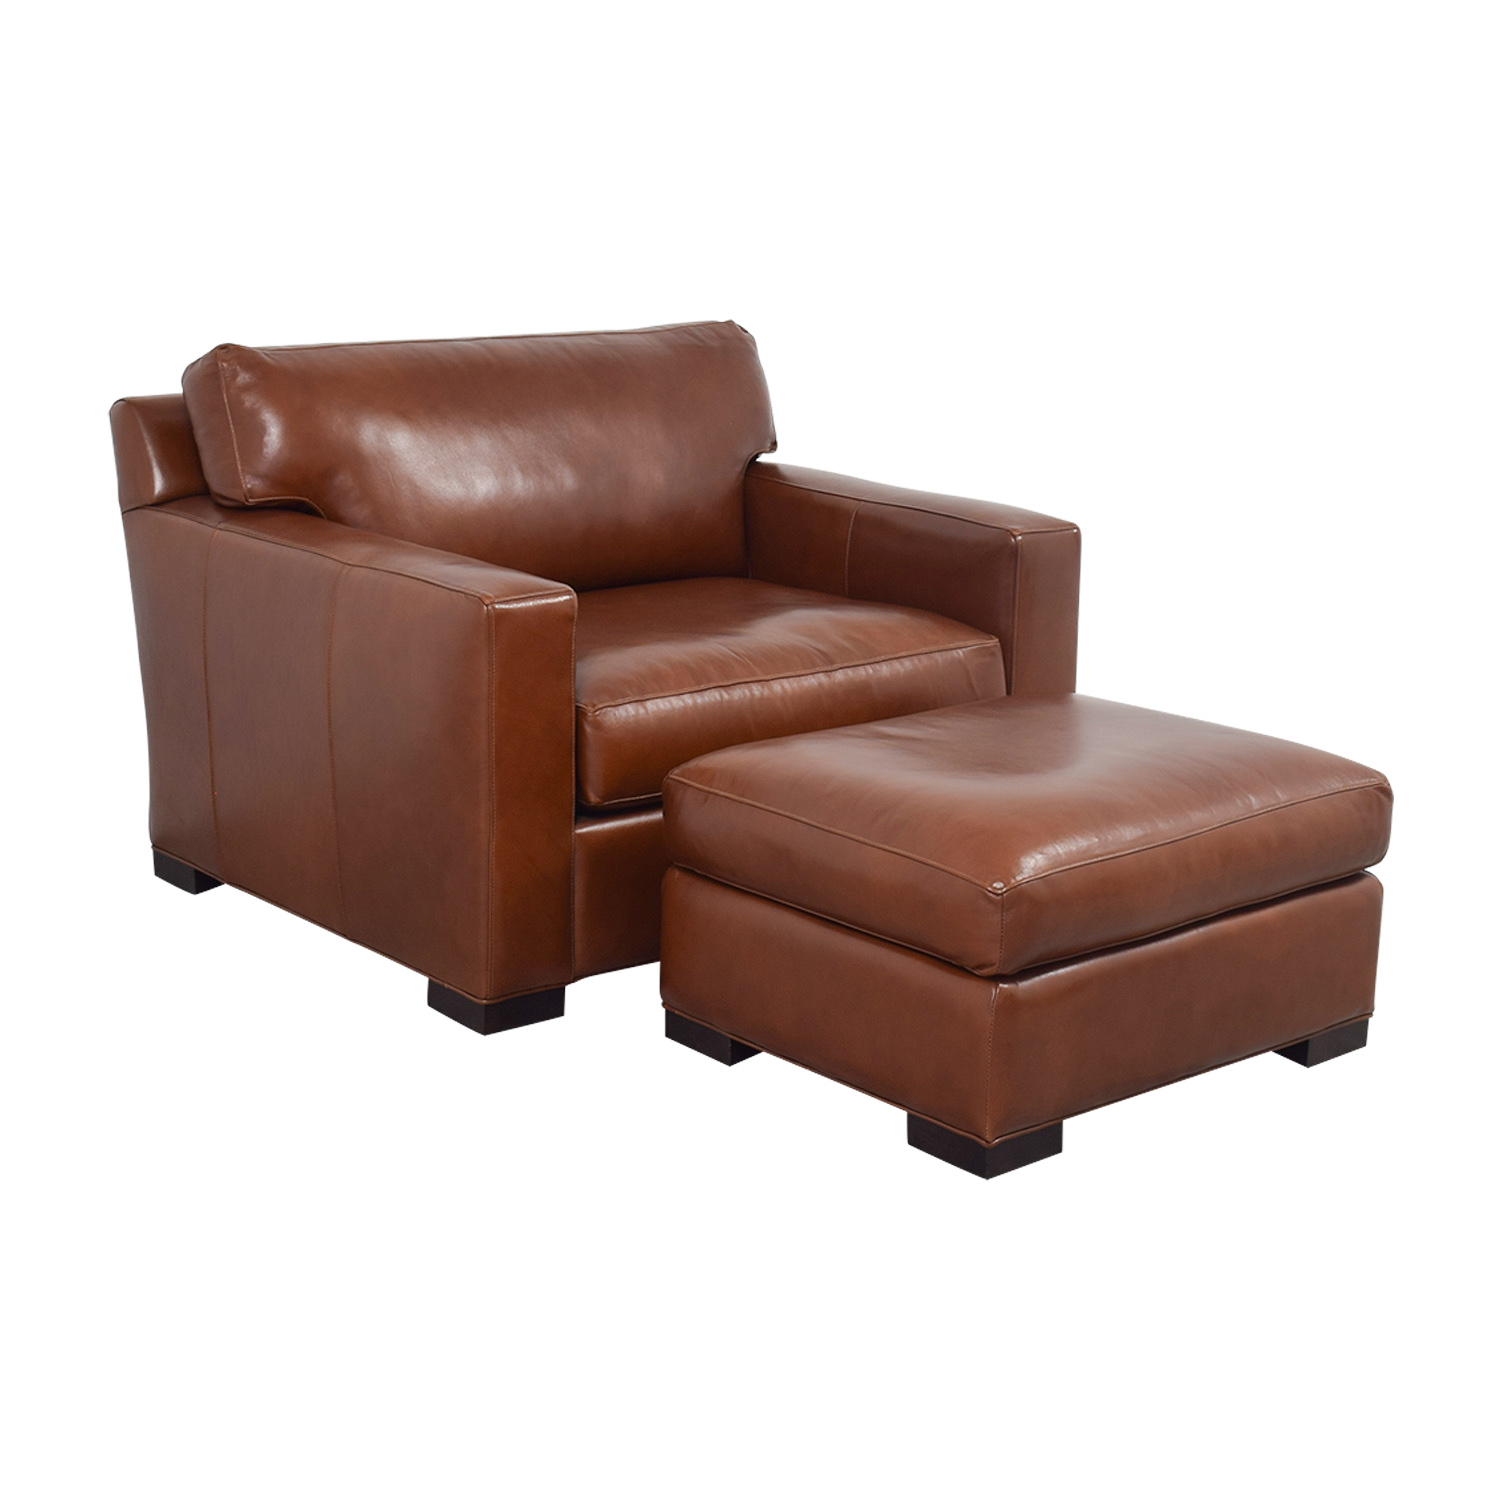 80 off crate barrel crate barrel axis ii brown leather chair and ottoman sofas. Black Bedroom Furniture Sets. Home Design Ideas